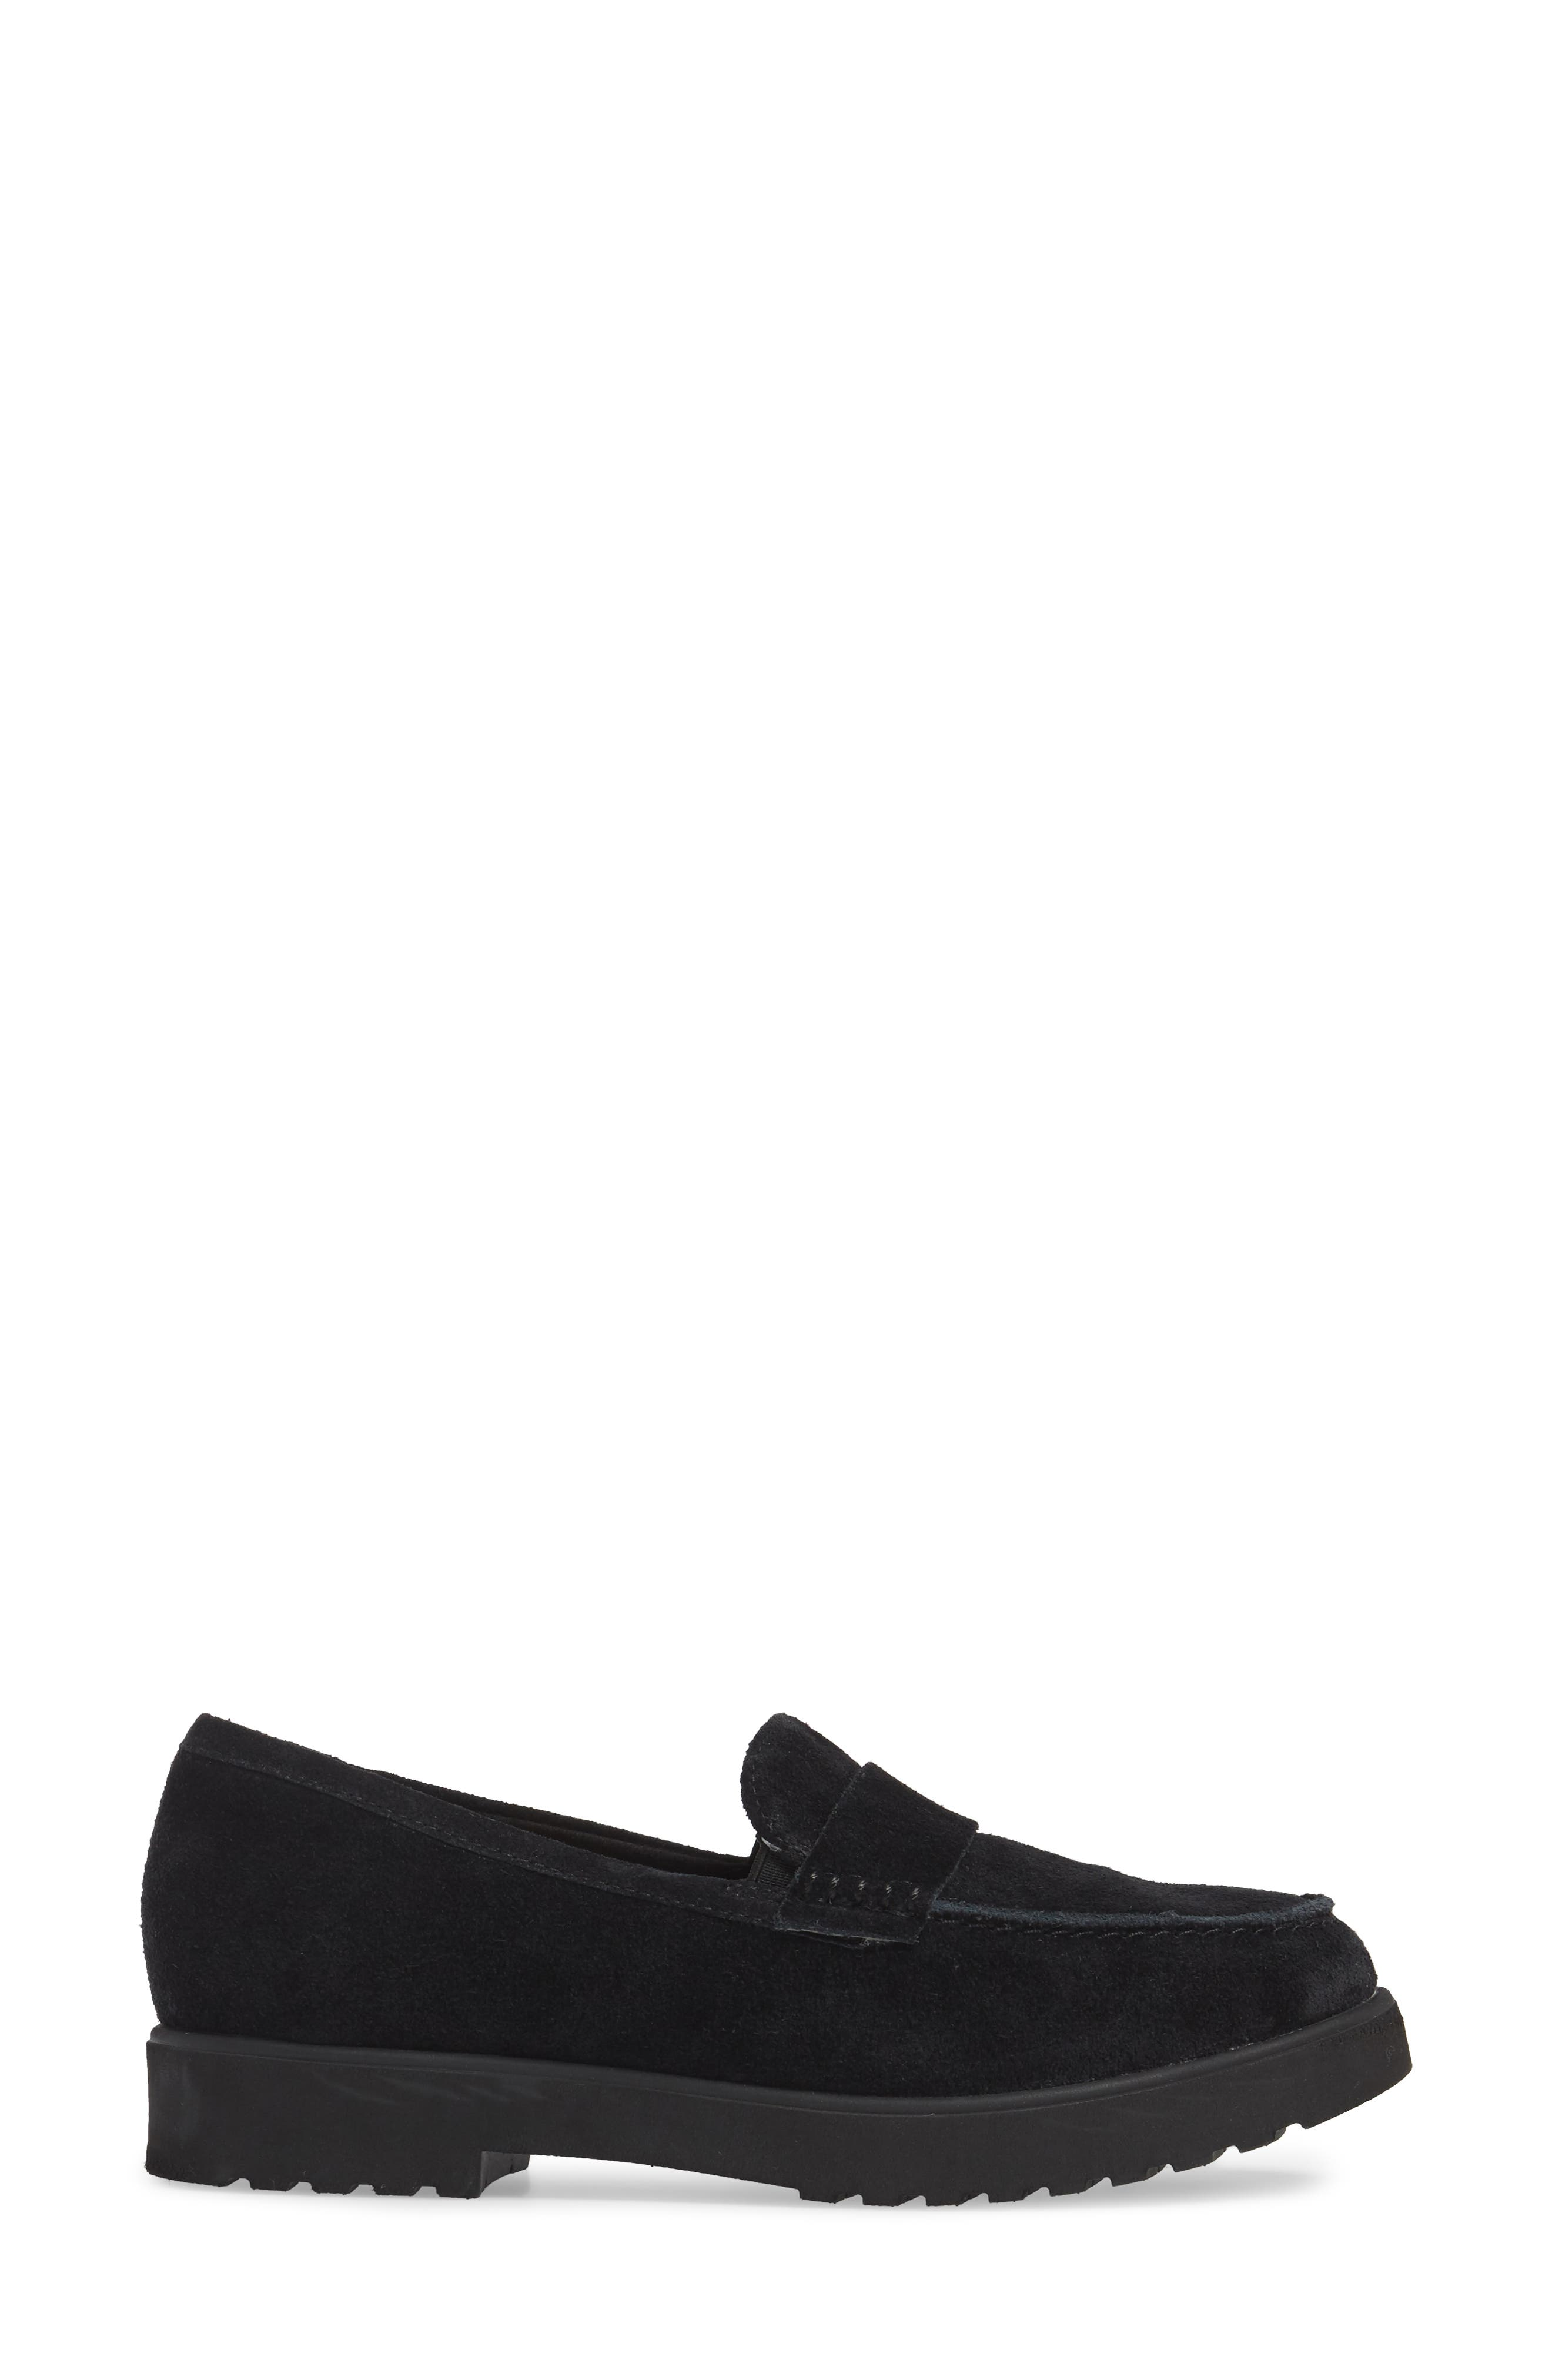 Bellevue Hazen Loafer,                             Alternate thumbnail 3, color,                             001